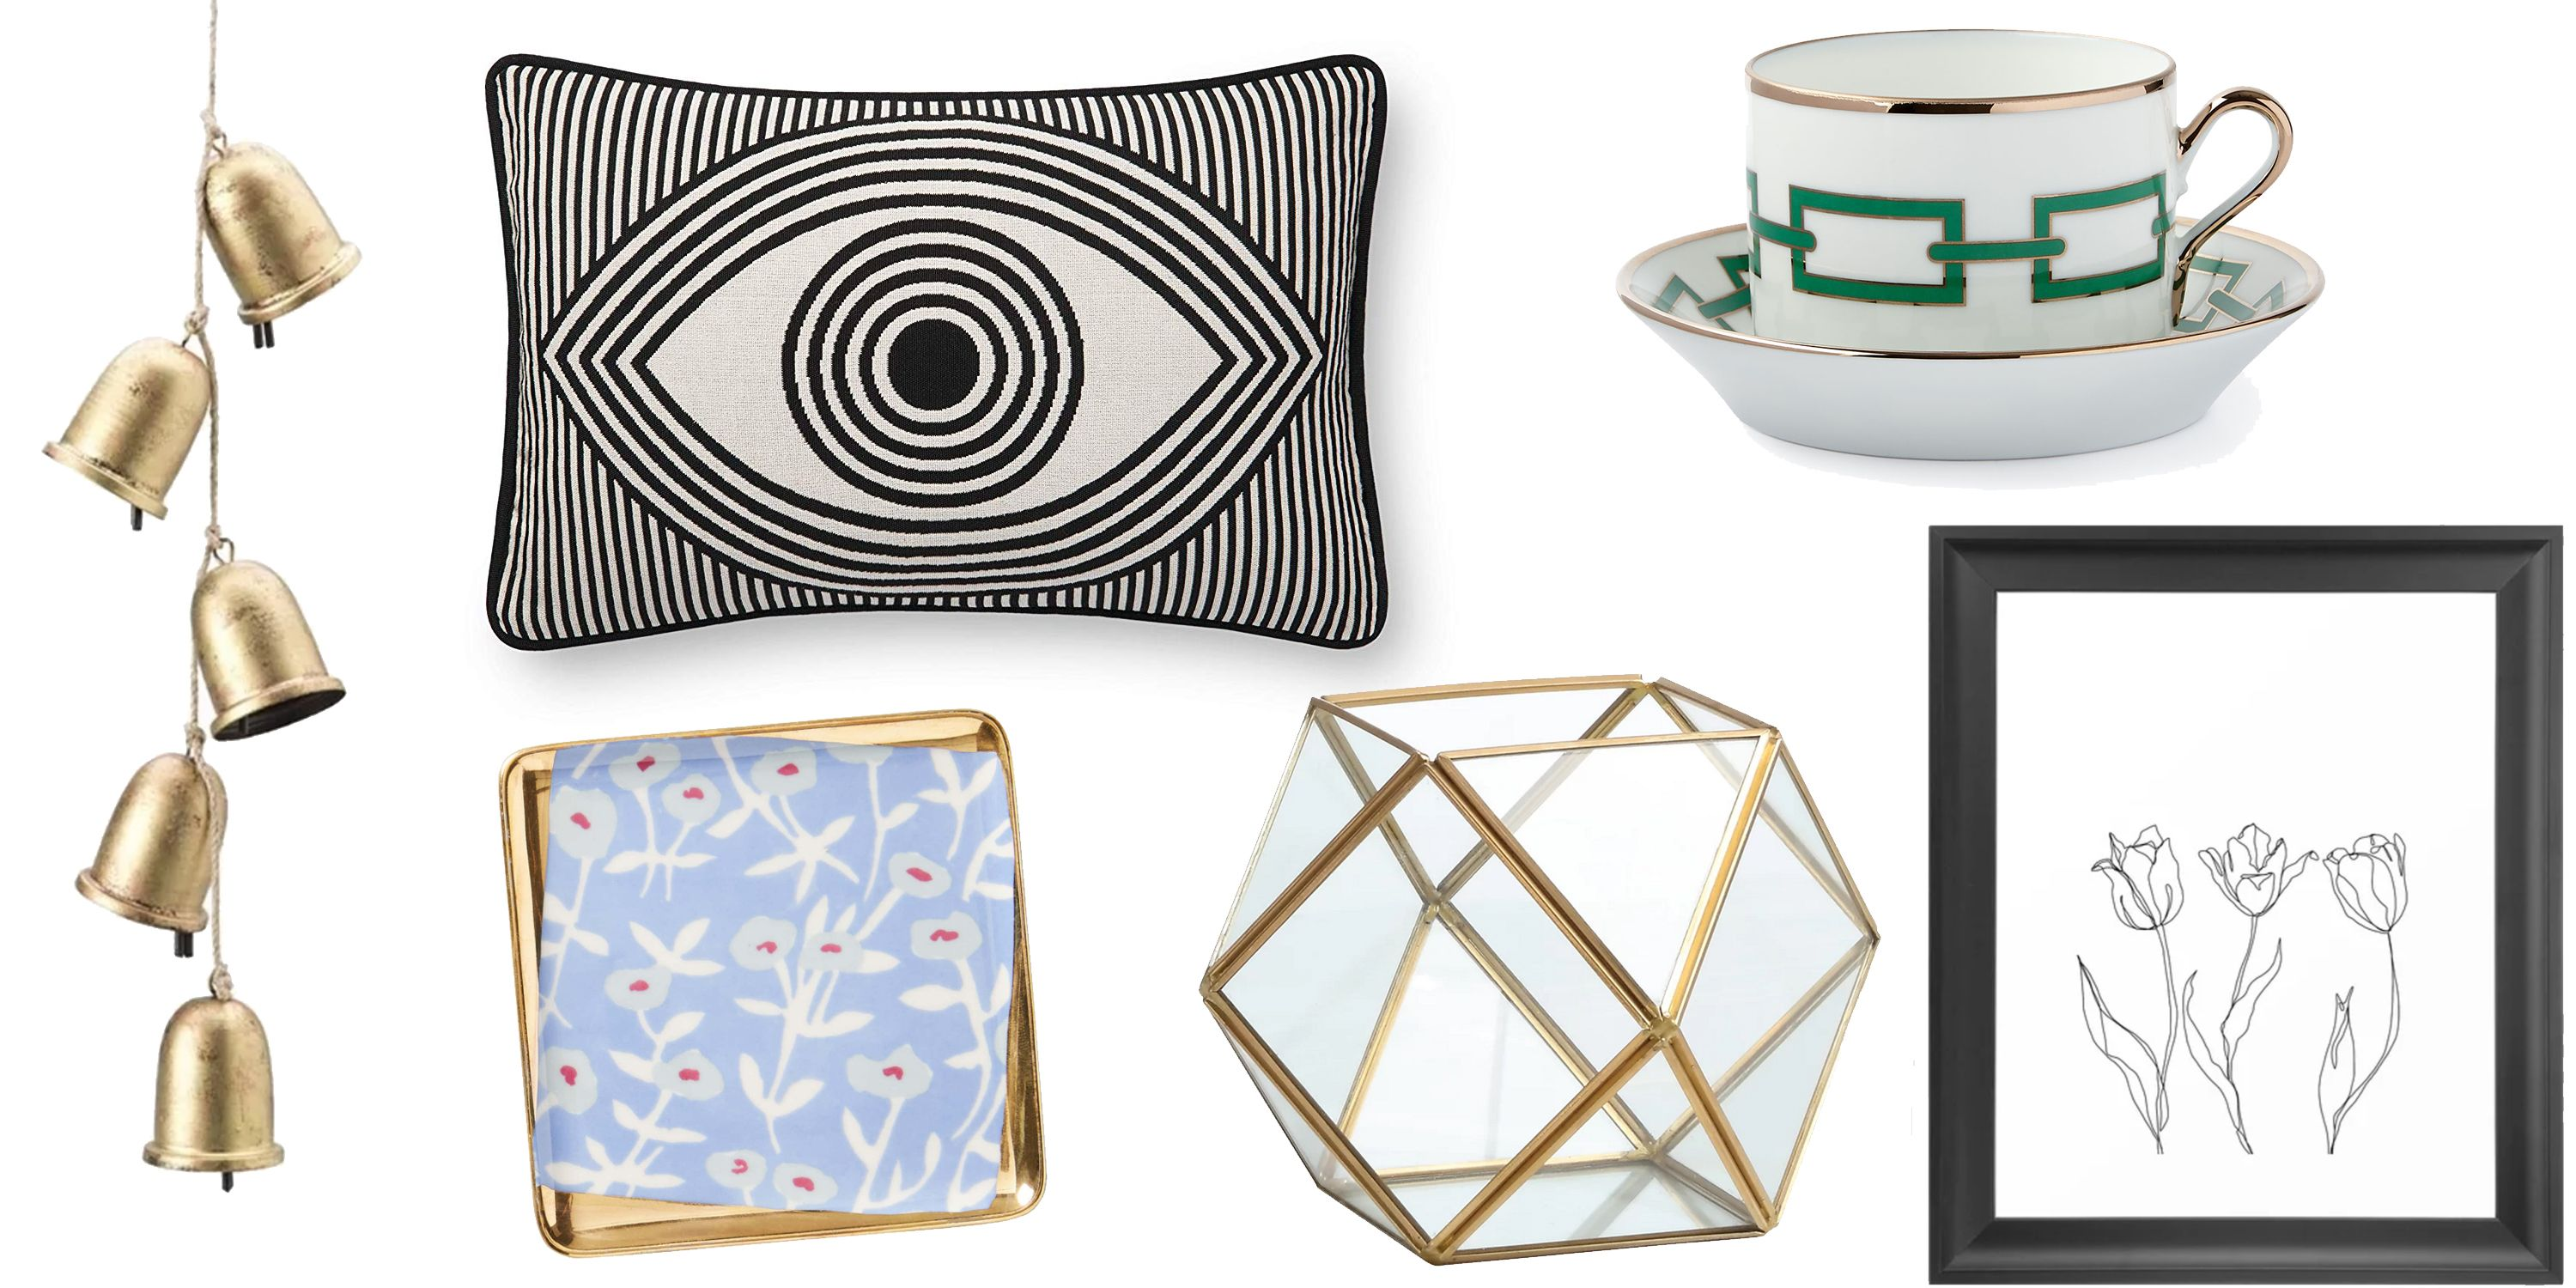 30 Christmas Gifts For The Home 2018 Unique Home Decor Gift Ideas